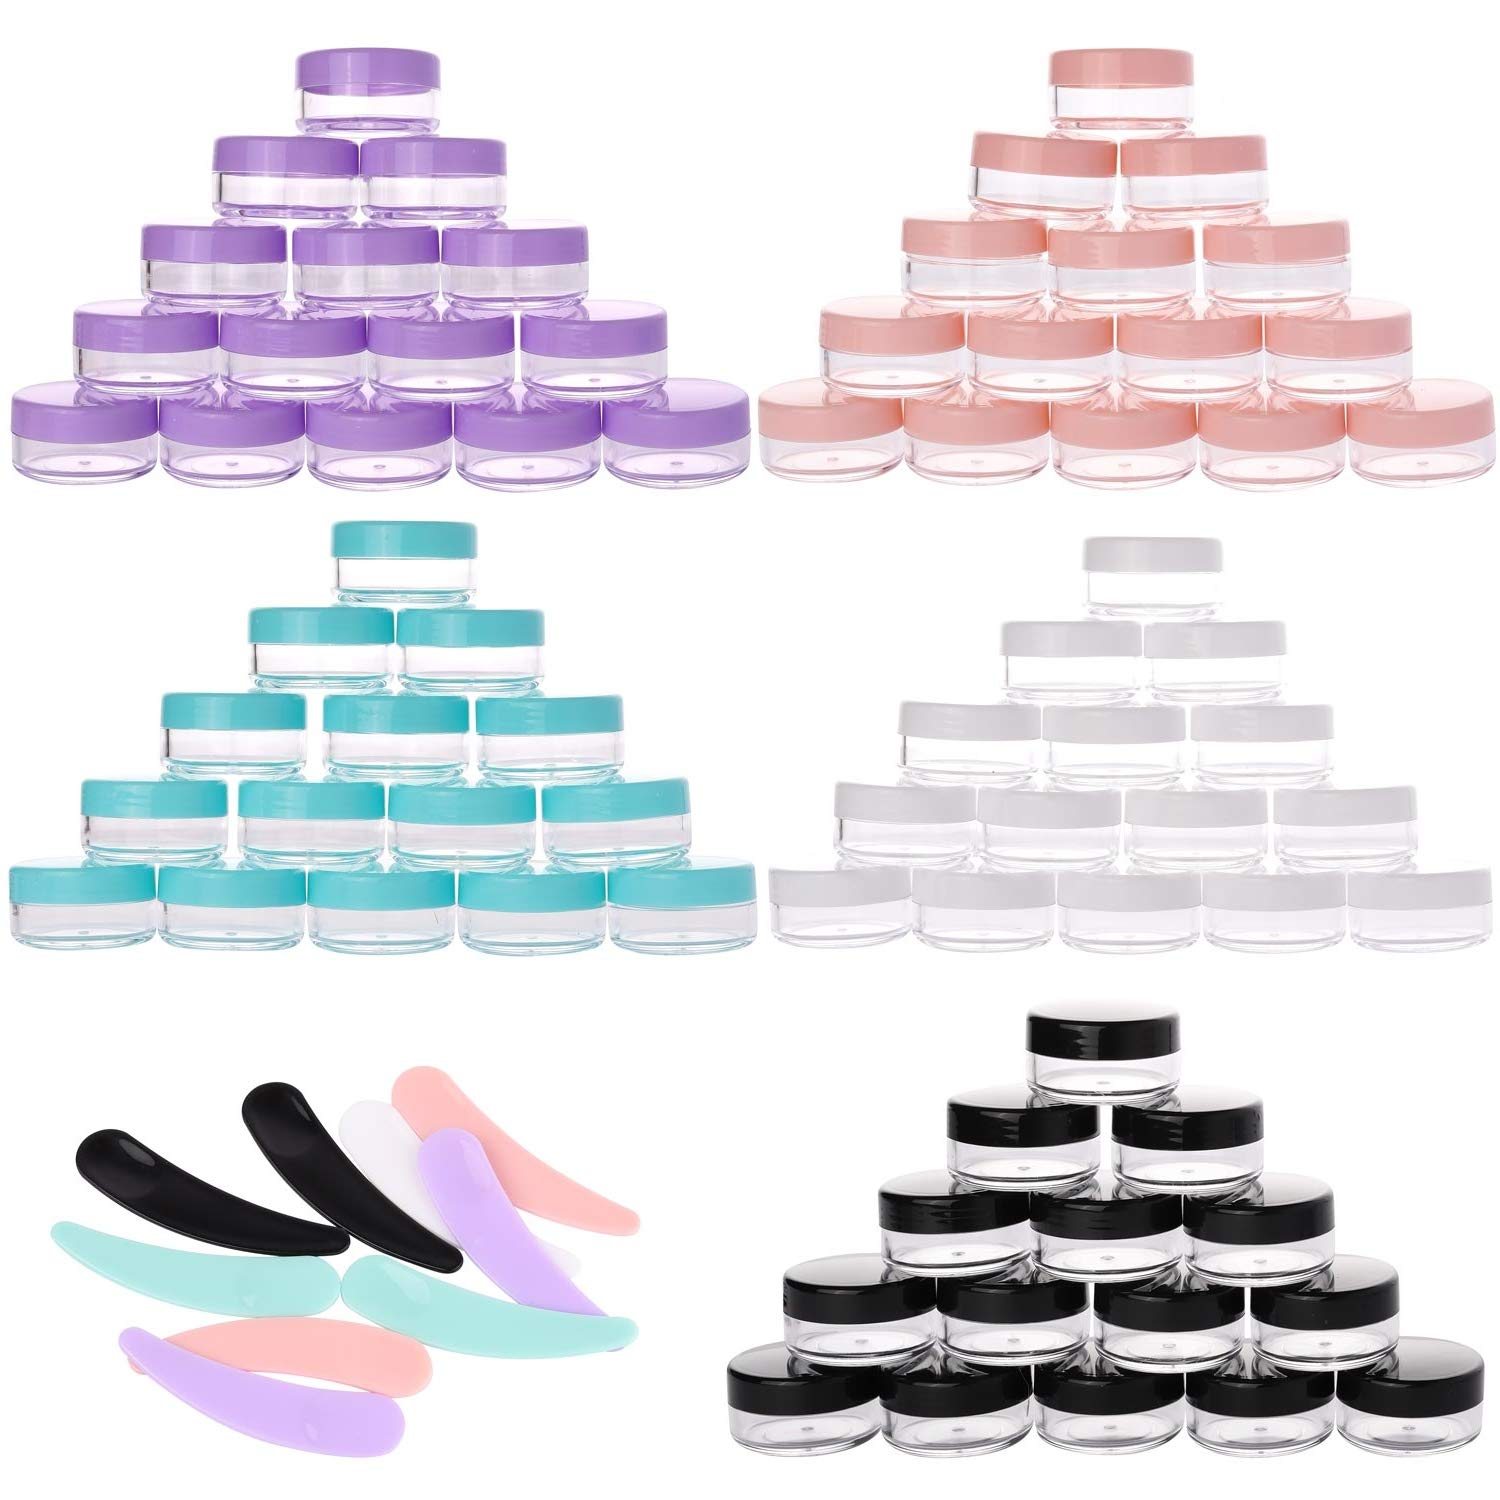 100 Packs 10g Travel Jars Containers with Lids 10ml TSA Approved Travel Bottles Leak Proof and 10Pcs Mask Spoon Cosmetic Spatula for Cream and Lotion